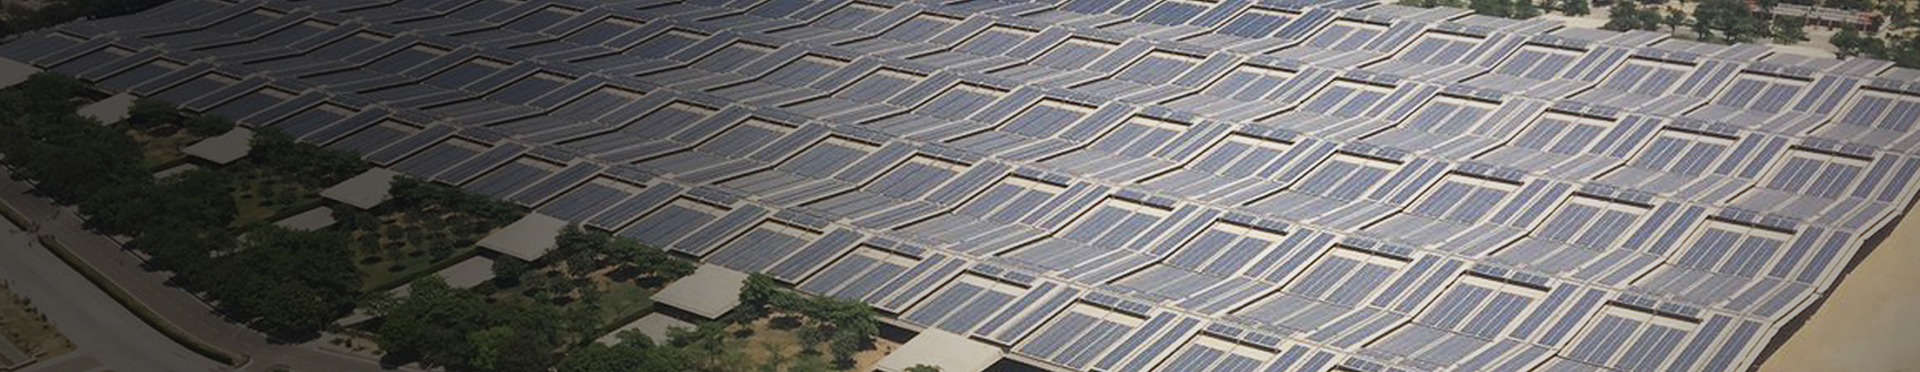 RSSB-EES Solar Rooftop Project by Tata Power